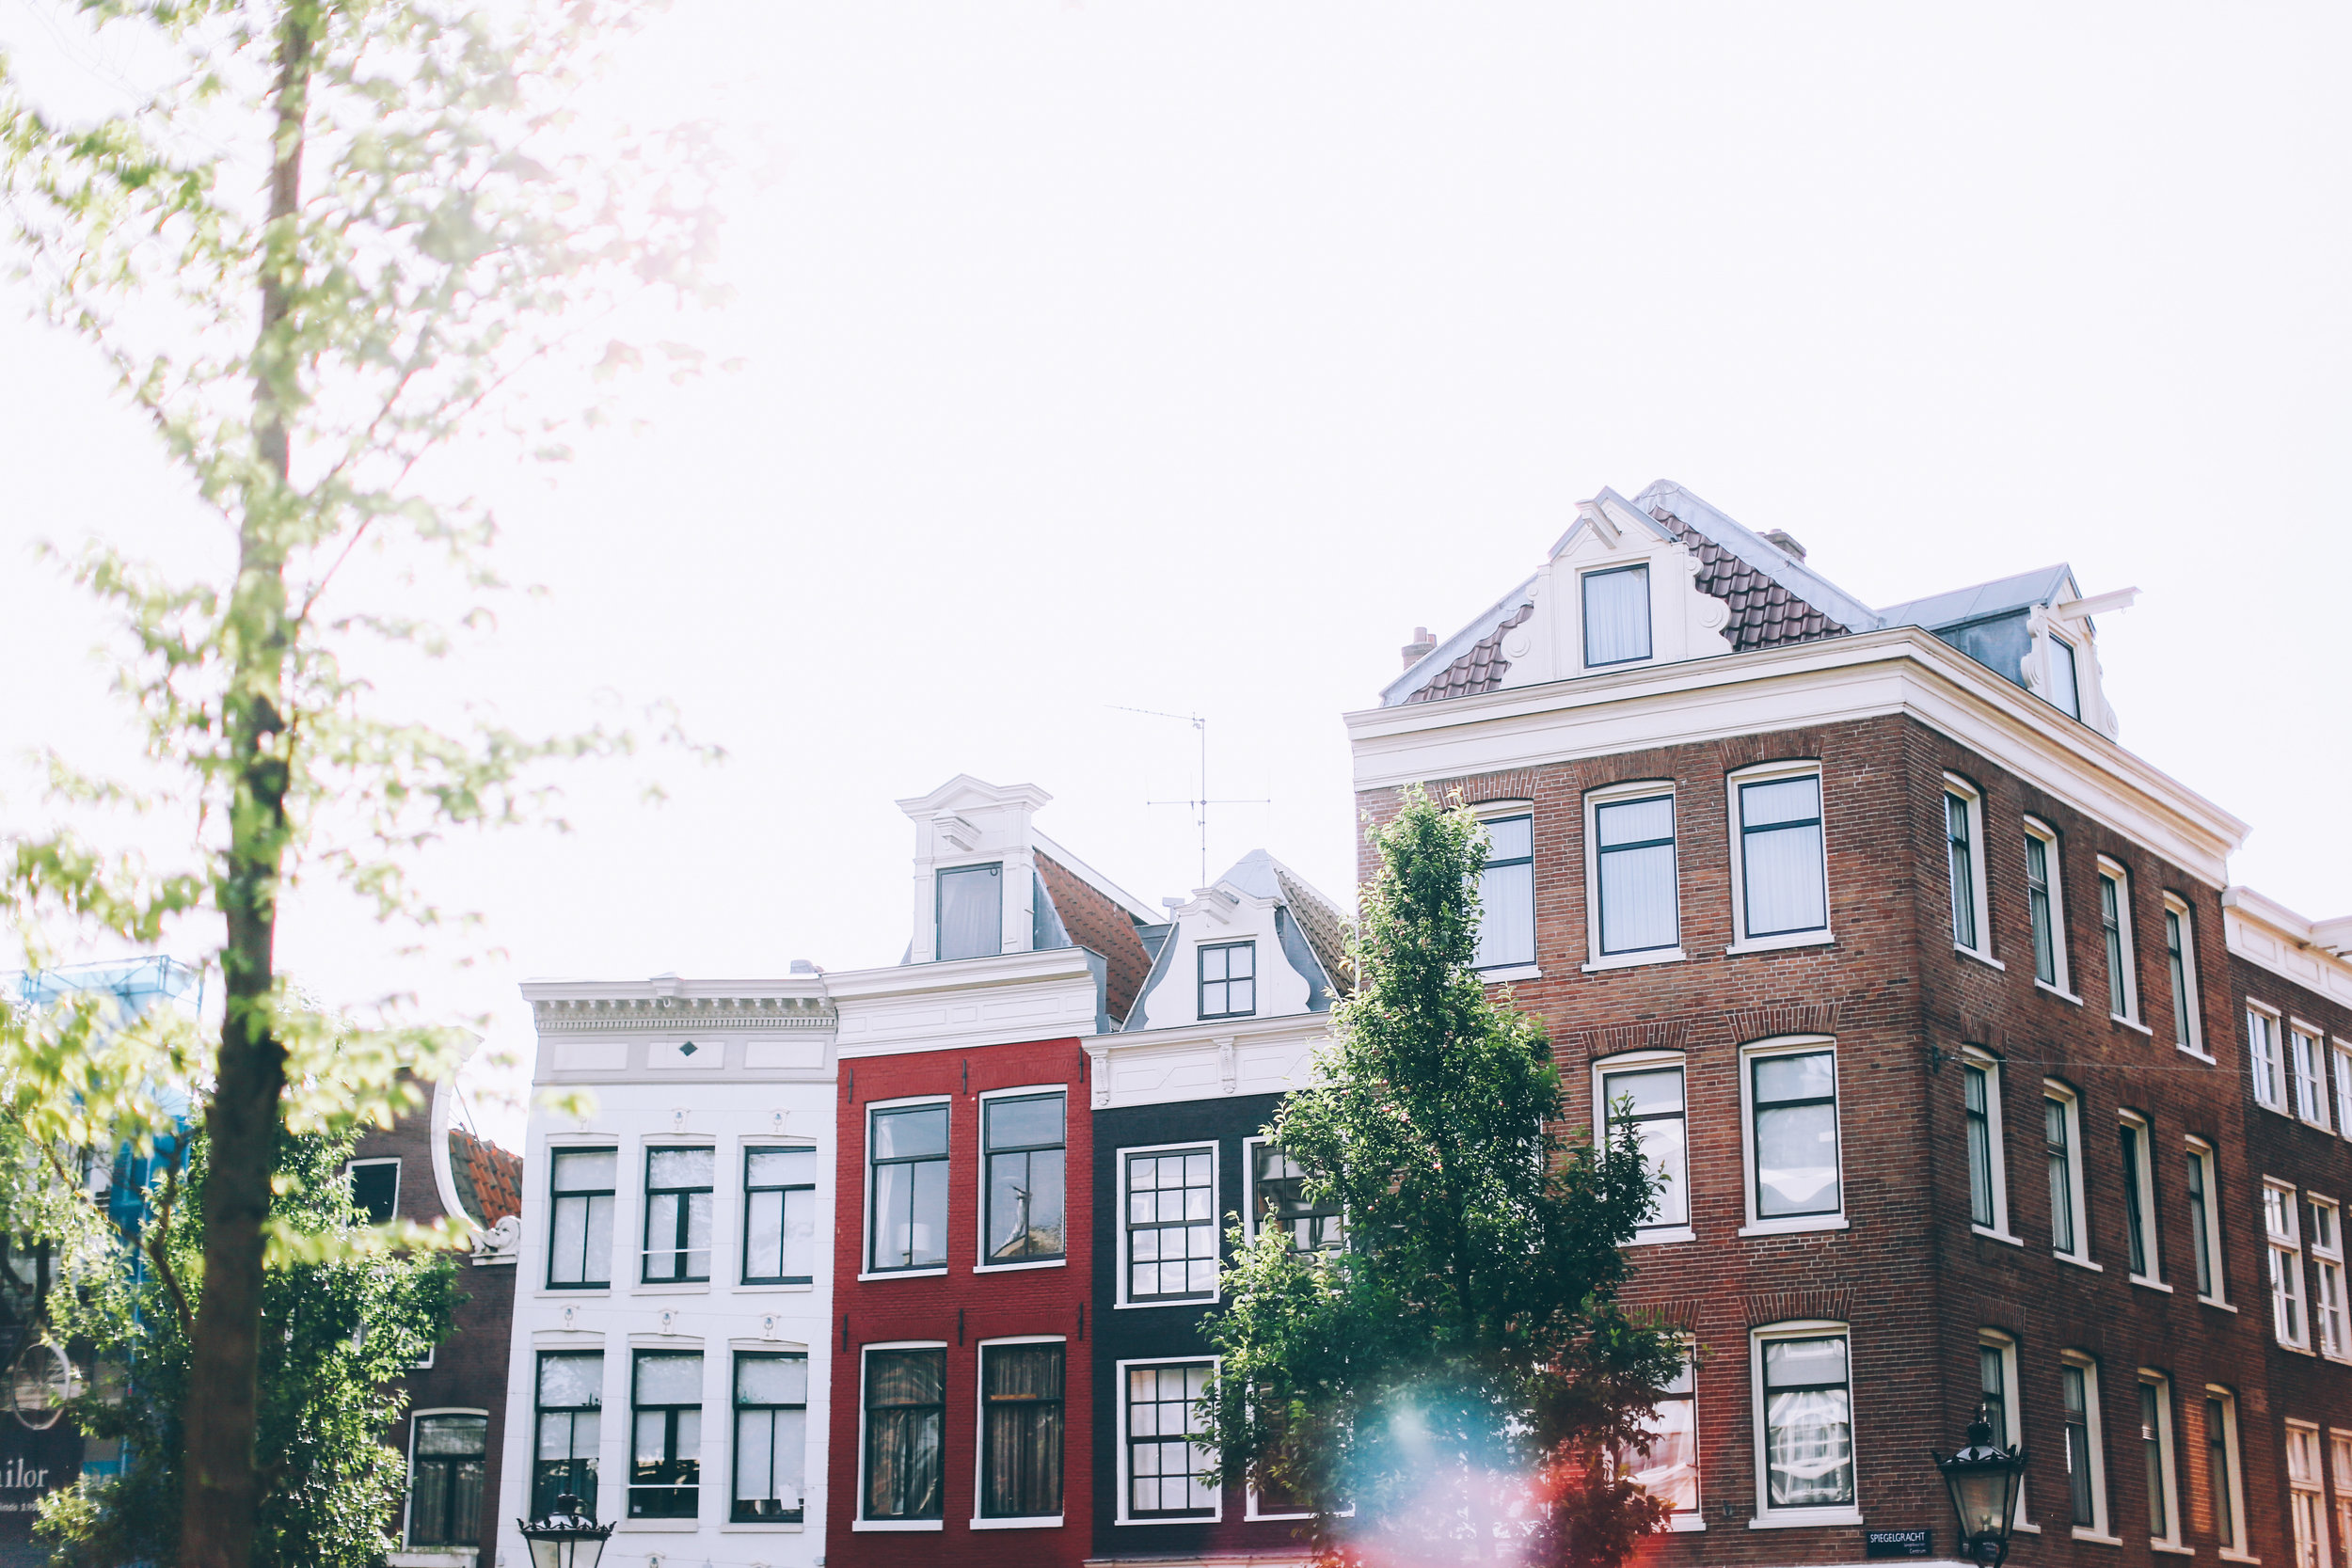 Amsterdam Houses Architecture Toronto Travel Photographers - Suech and Beck